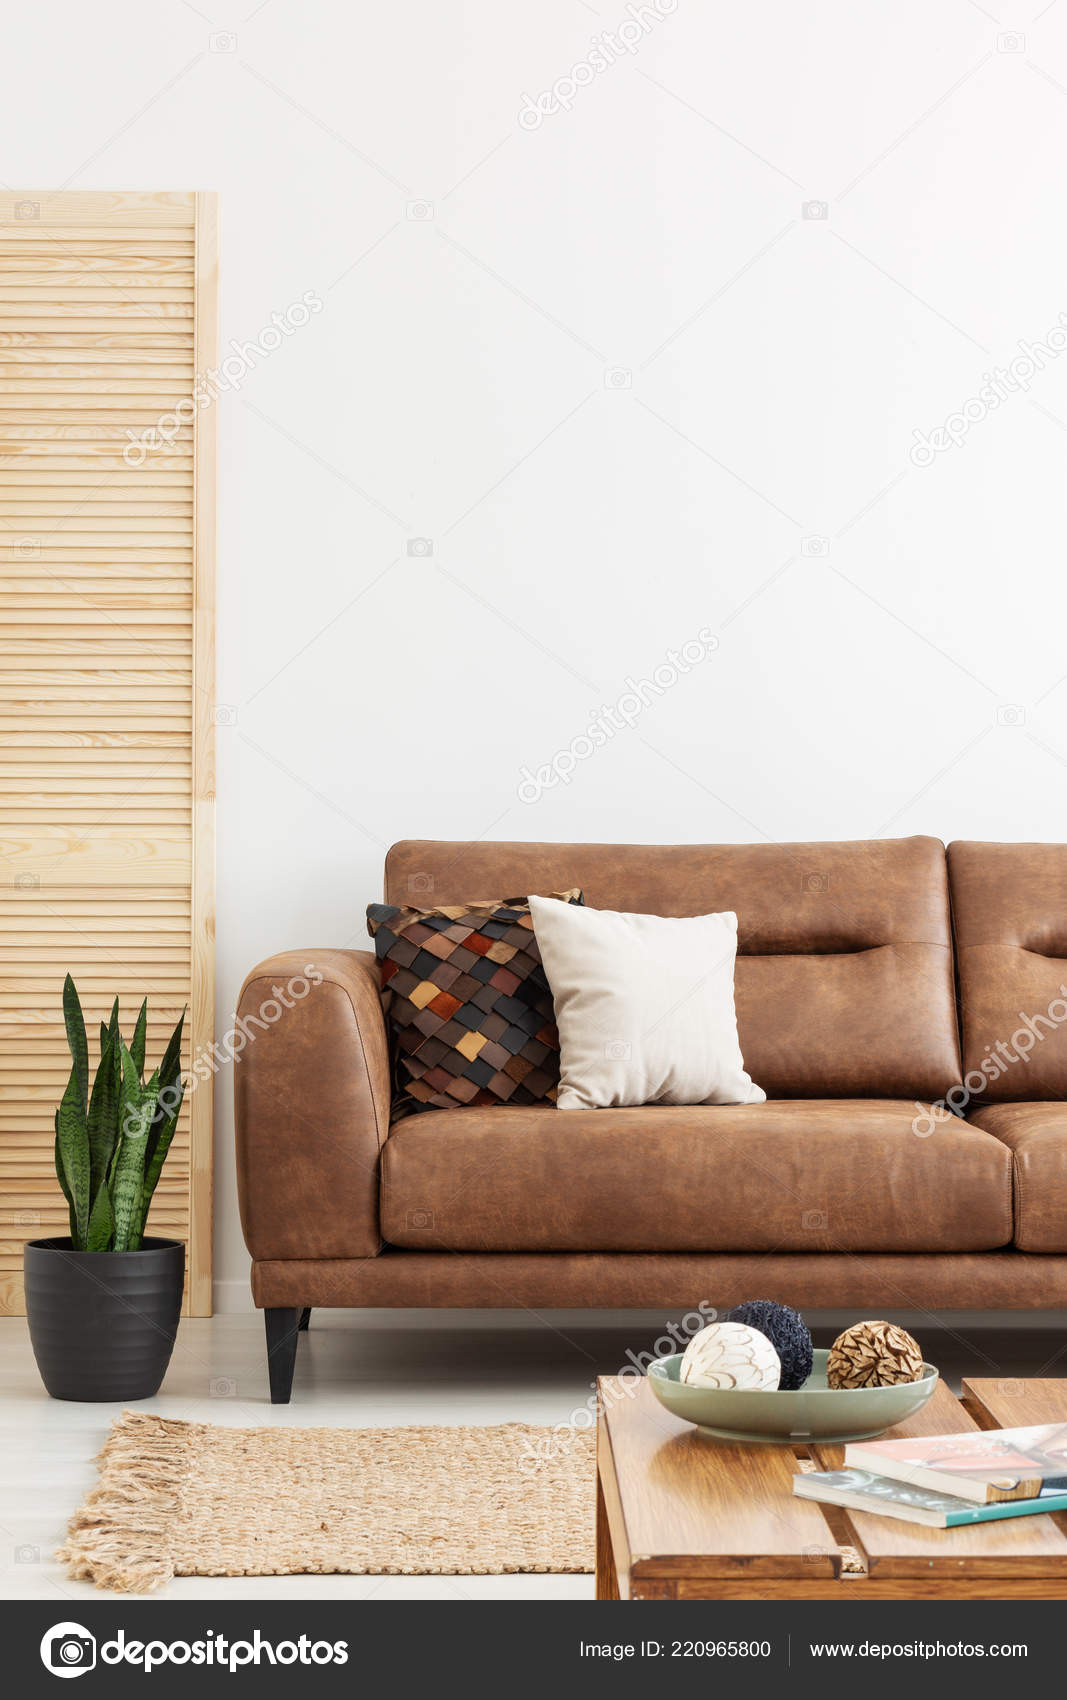 Pillows Leather Couch White Living Room Interior Plant Rug